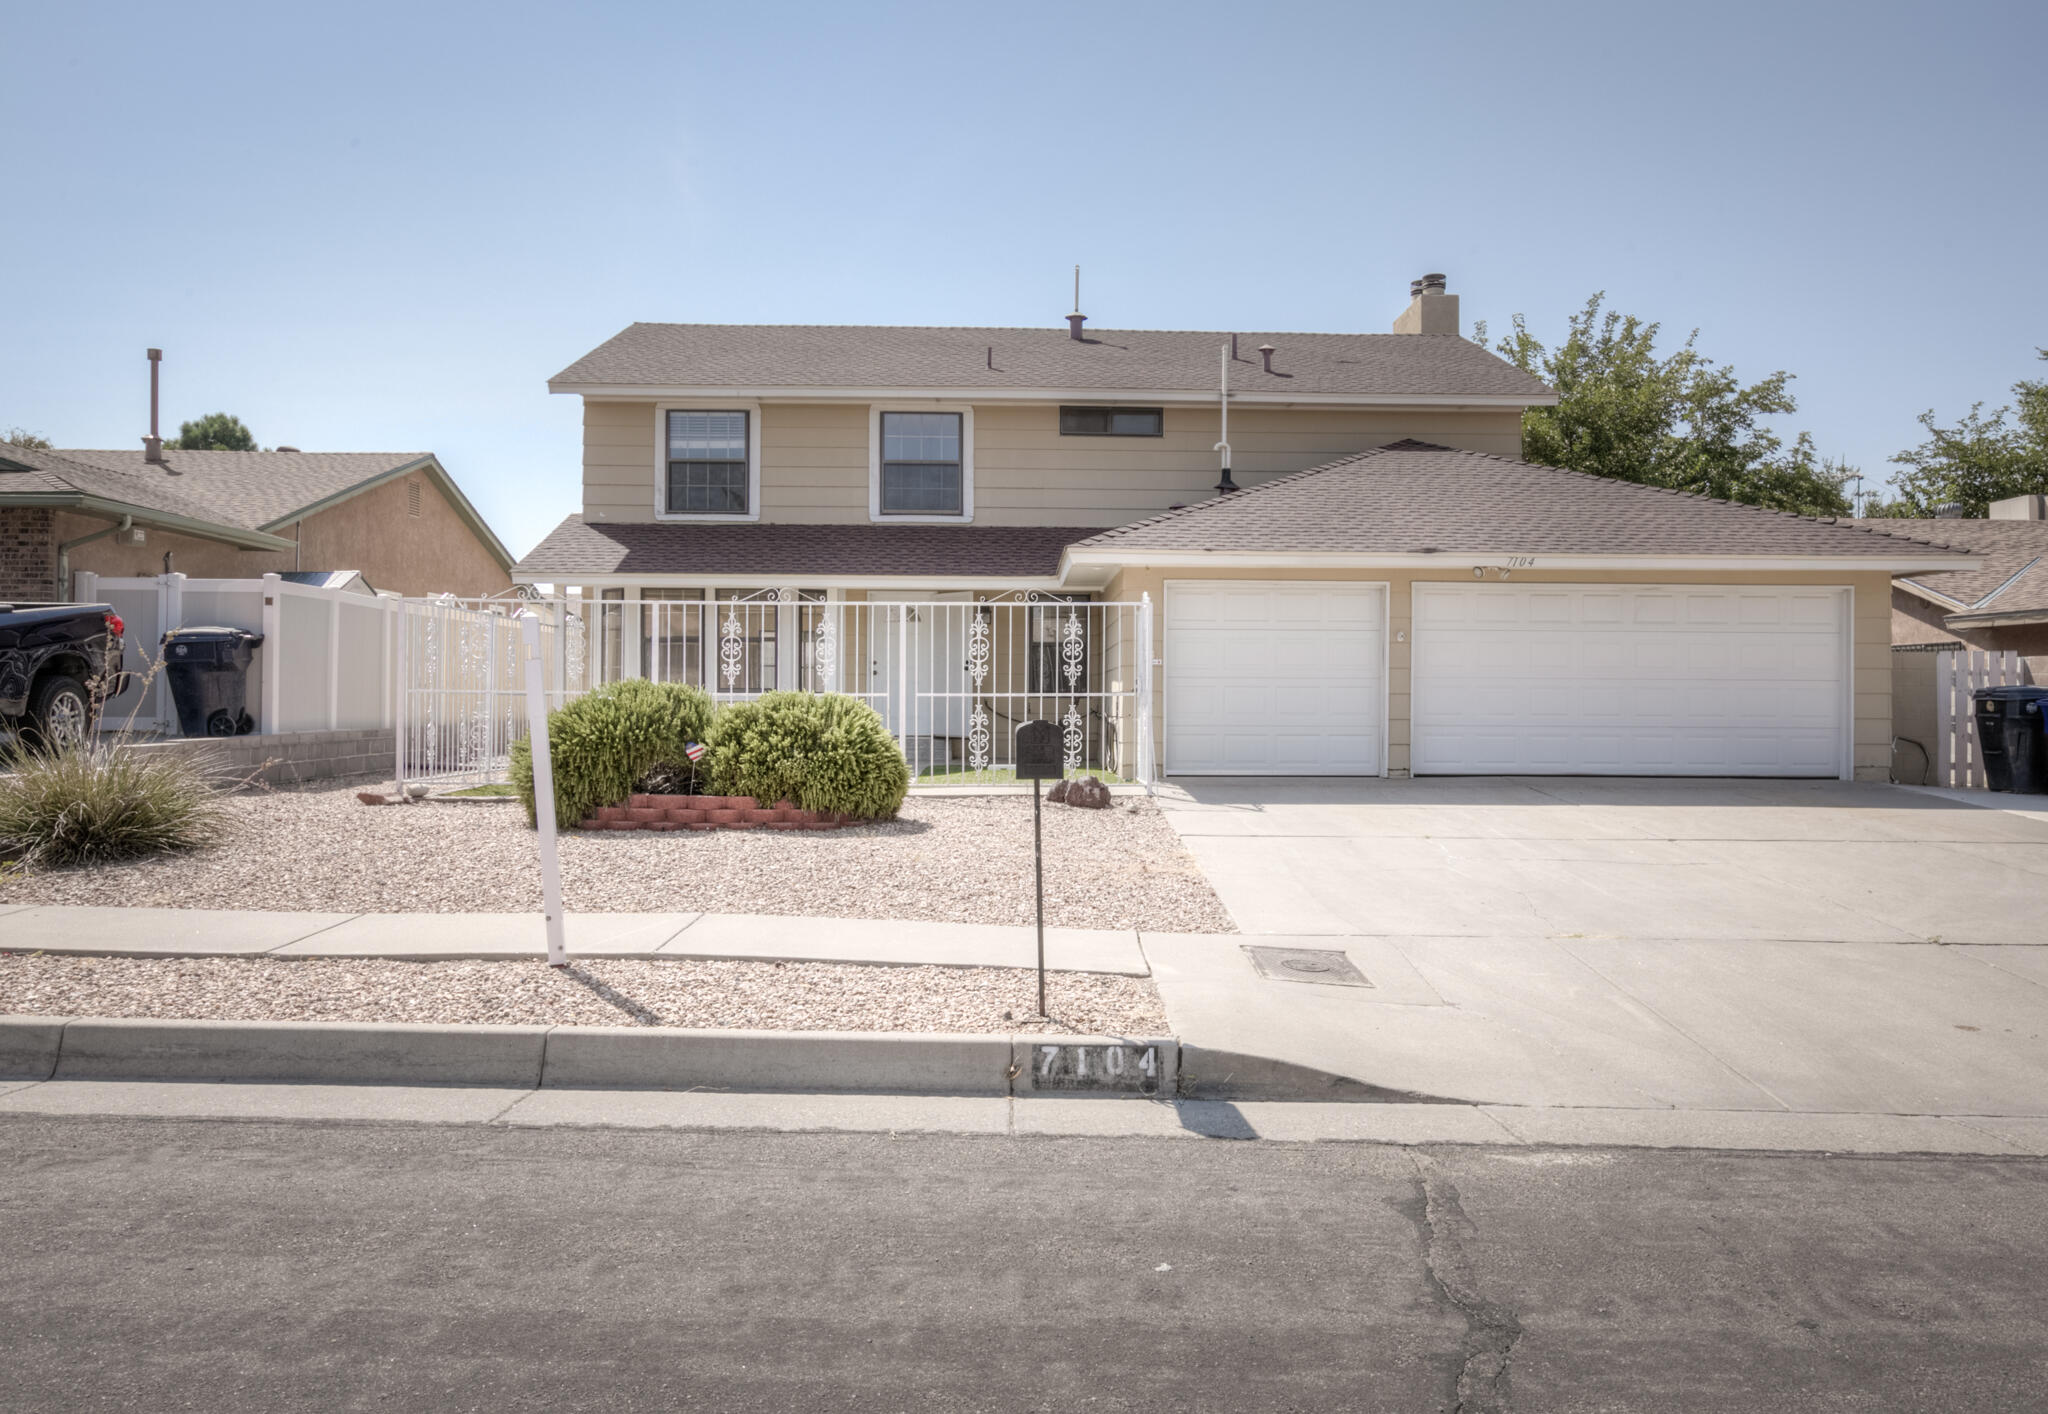 Nice 2 story home in very desirable location. 3 bedrooms plus a loft. Well appointed master bedroom with balcony. 2 Living Areas with wonderful 3 car garage for the extra car. Carpet and paint recently redone.